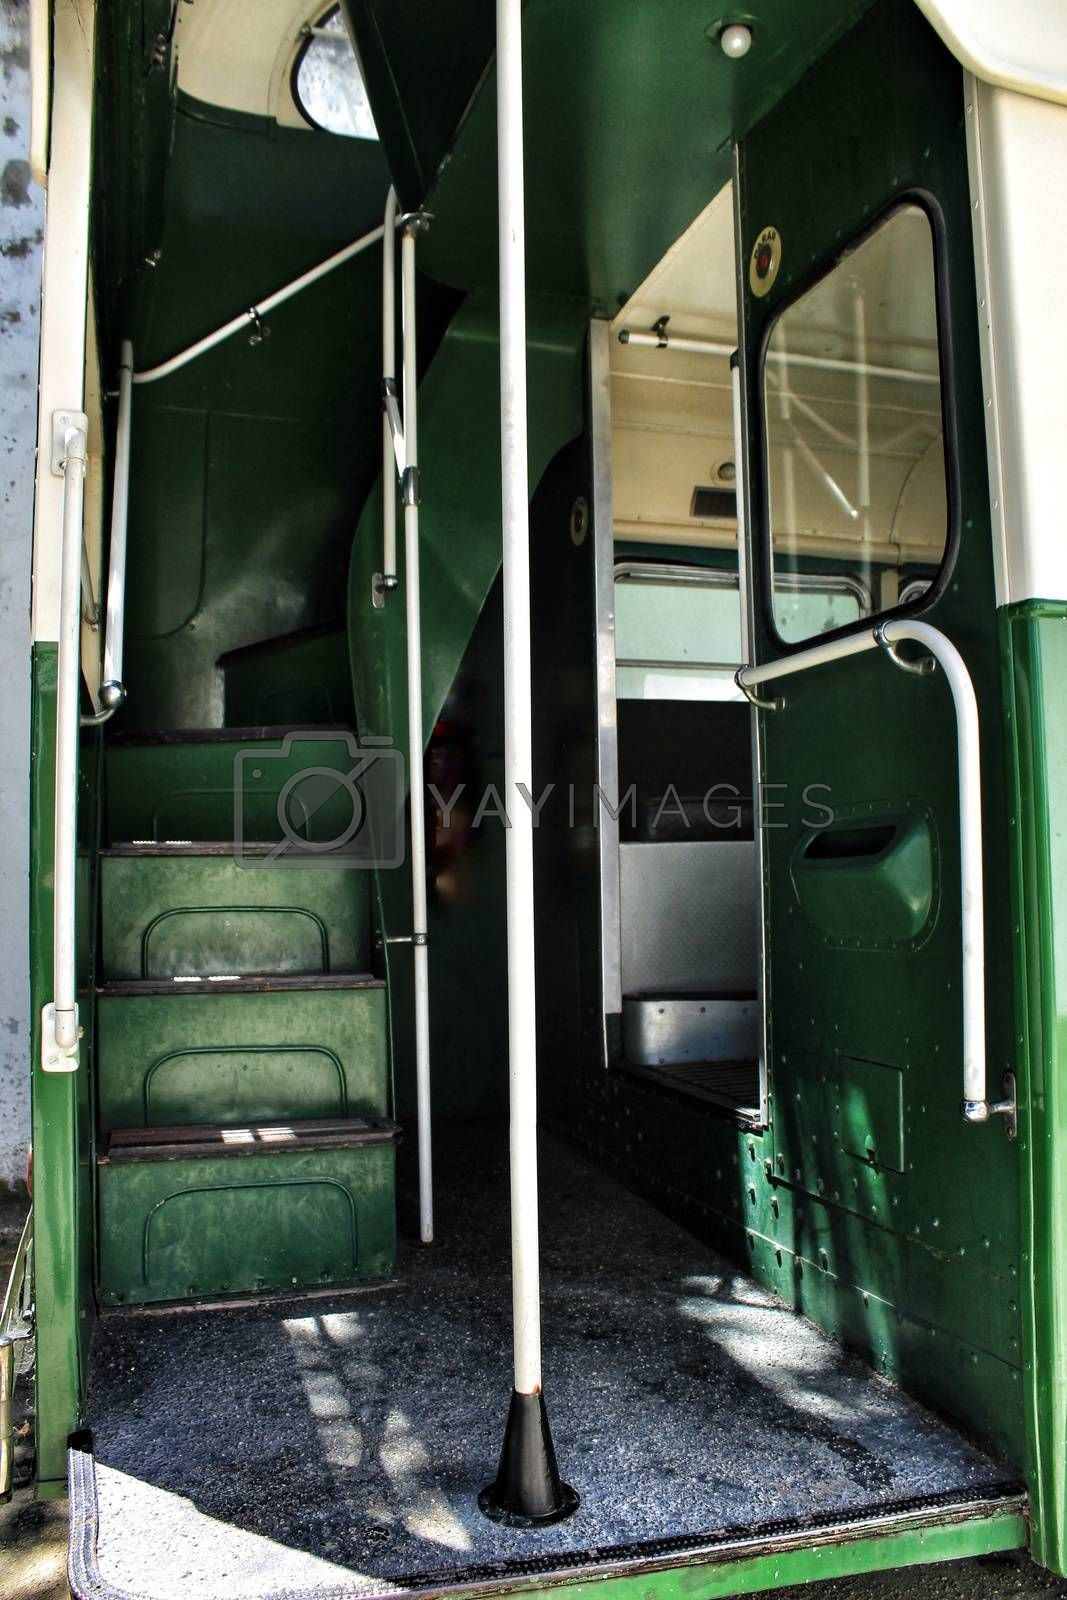 Lisbon, Portugal- June 15, 2018: Old and colorful inside passenger bus at an exhibition.